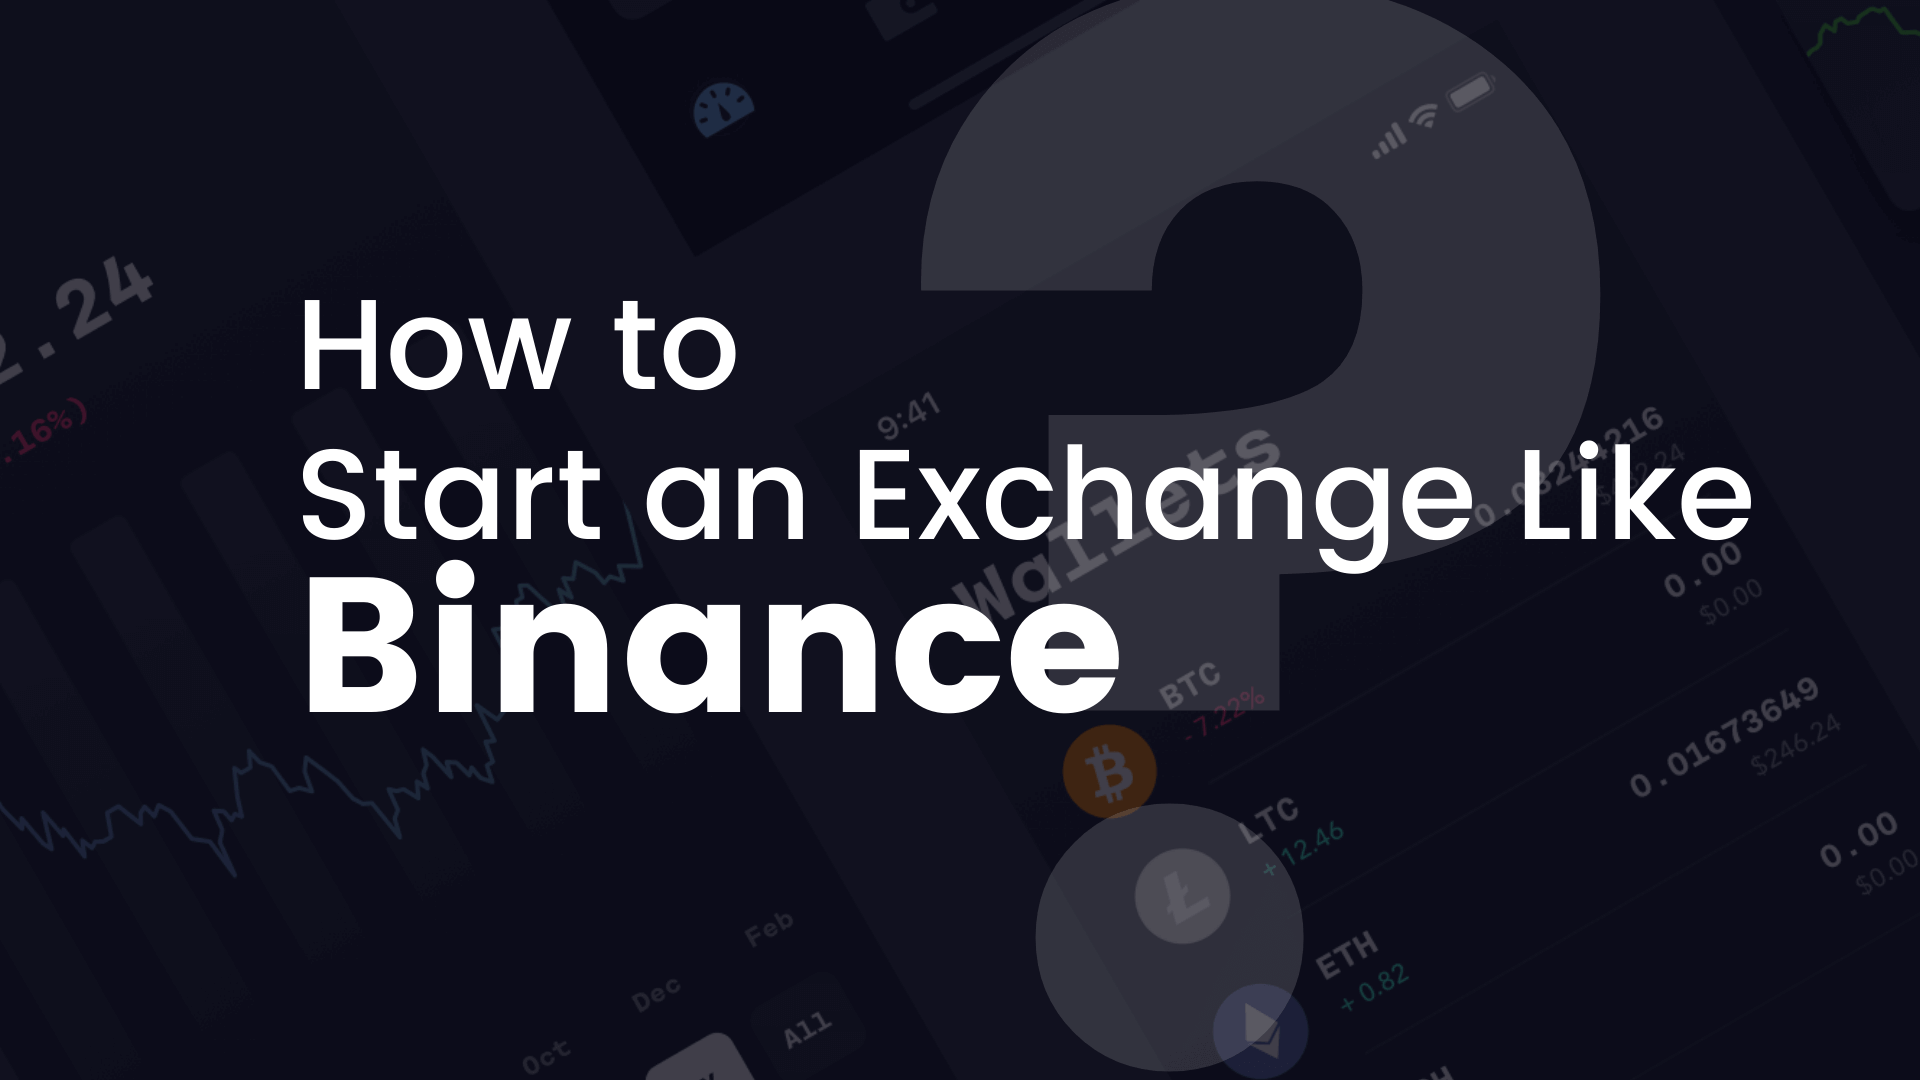 How To Start an Exchange Like Binance?